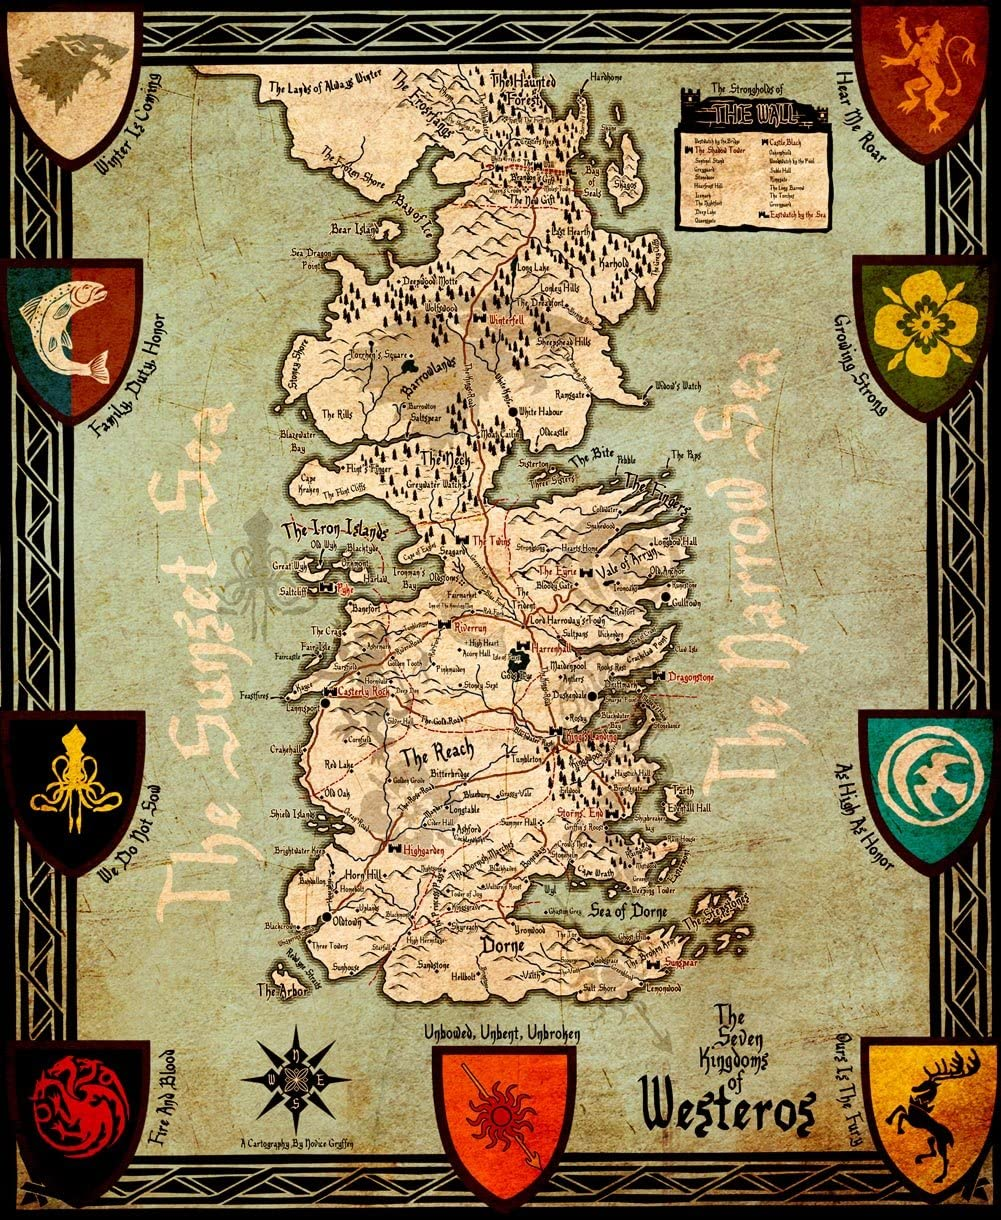 Amazon Com Wall Decor Master Game Of Thrones Houses Map Westeros And Free Cities Poster Home Deco On Silk 28 Inch X 24 Inch Posters Prints